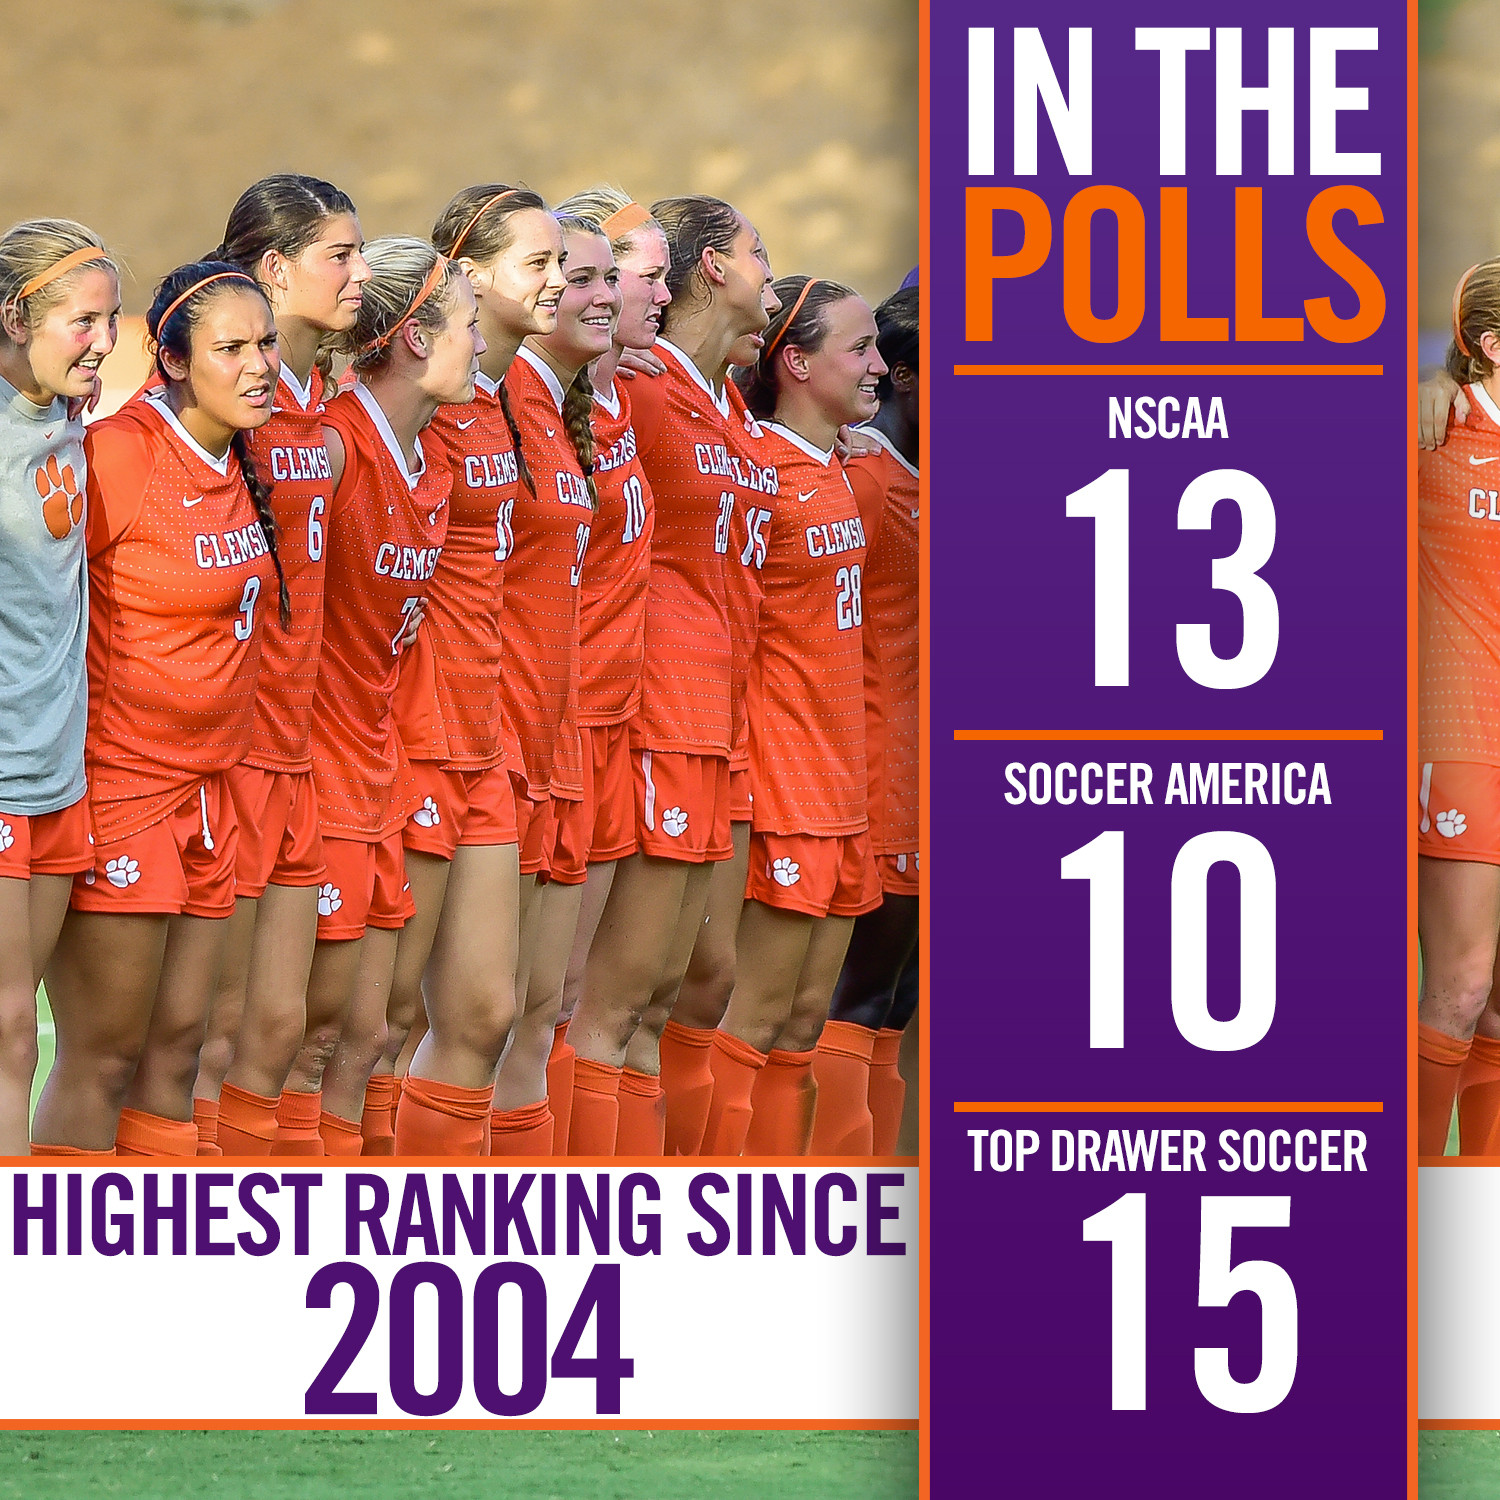 Tigers Ranked top 15 Nationally